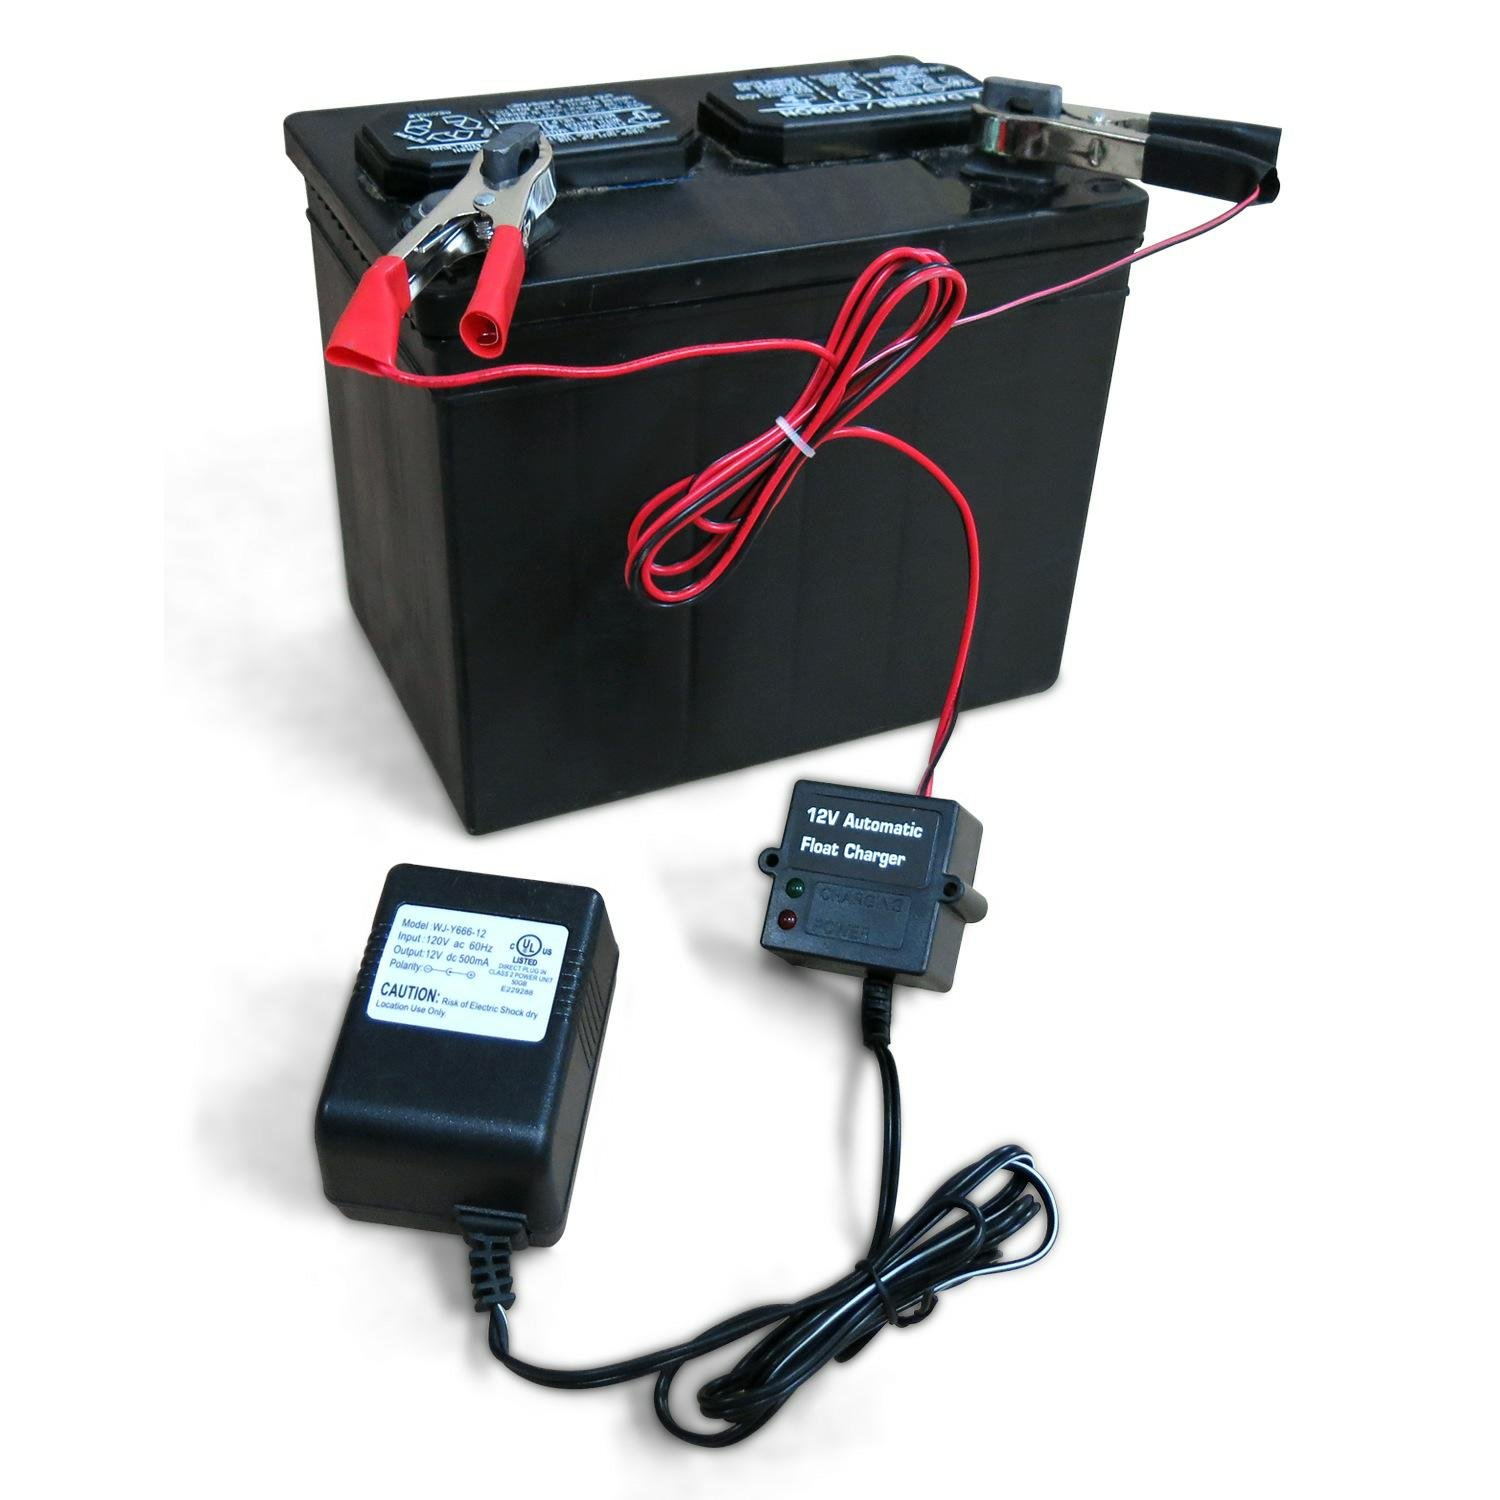 hight resolution of 12v battery charger circuit diagram with auto cut off car solar automatic auto on off 12v 1 2 amp 5a 12 volt 12 v draws under 15 watts you can run